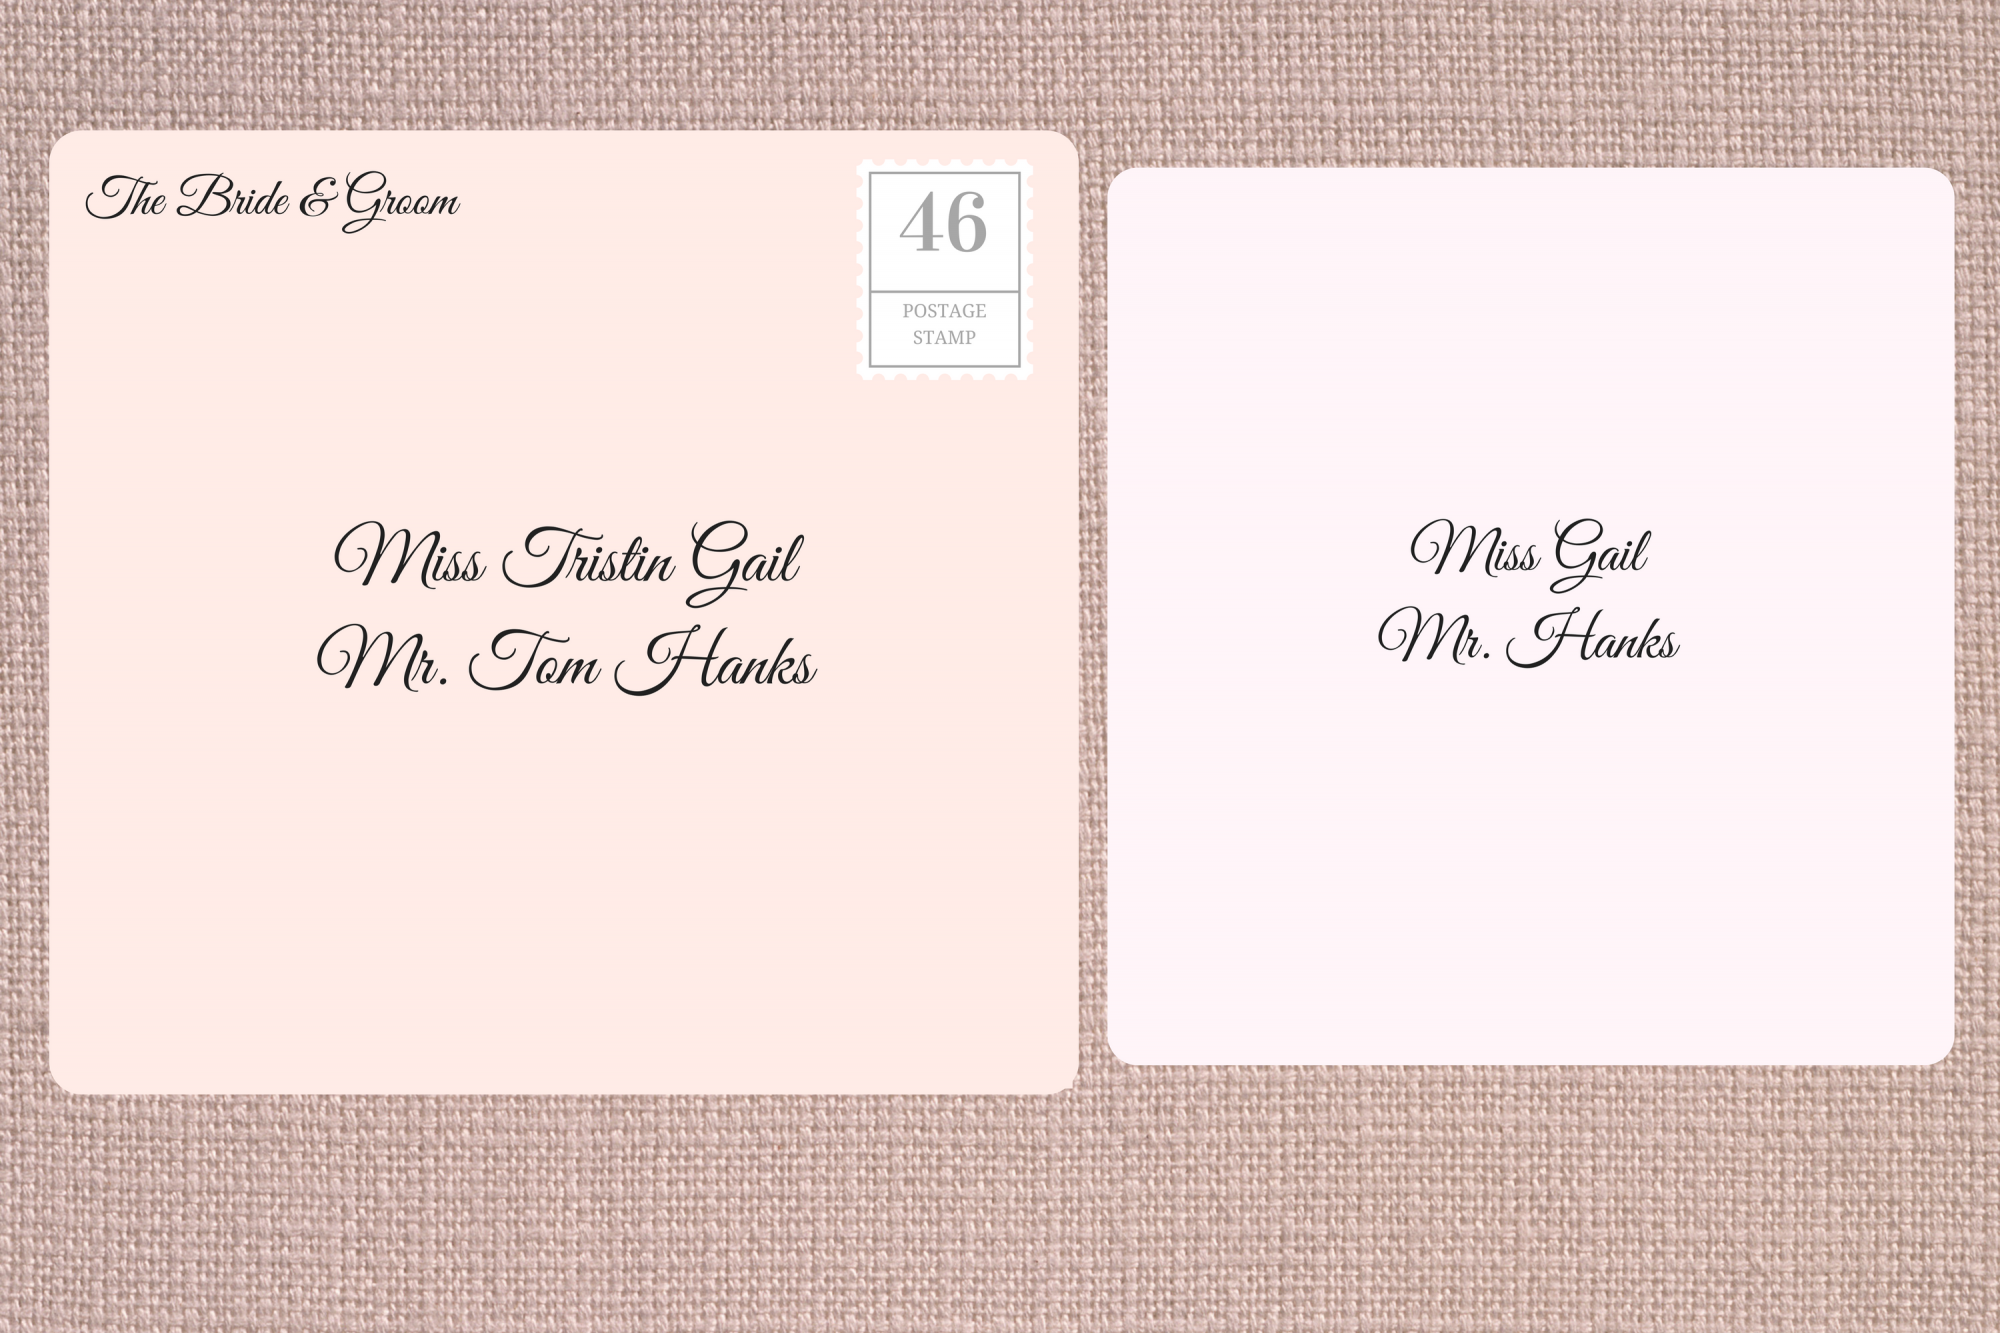 Addressing Double Envelope Wedding Invitations to Friend with Known Guest